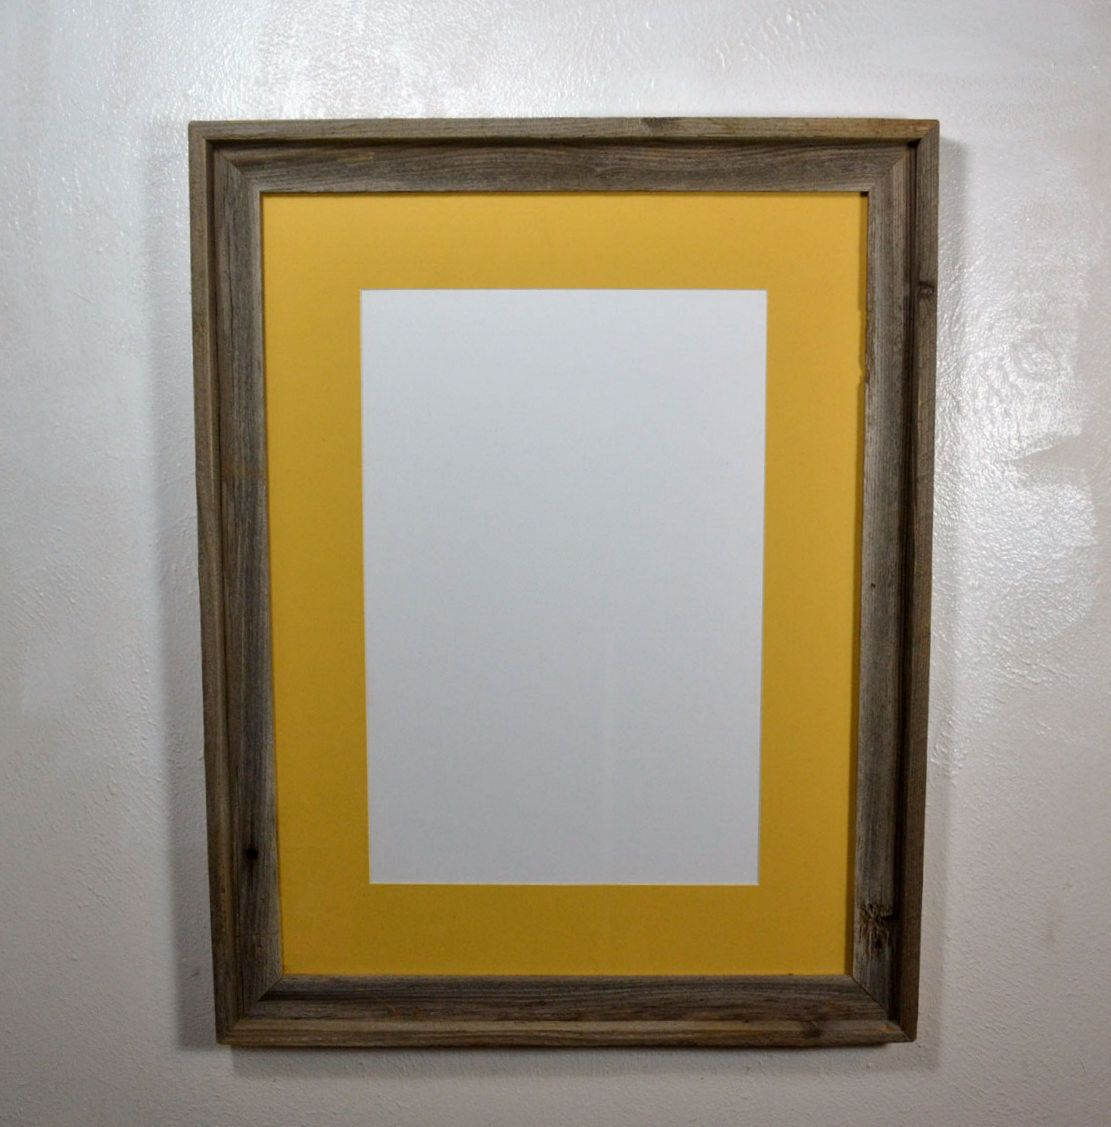 18x24 Poster Frame 18x24 Poster Frame Reclaimed Wood With 12x18 Yellow Mat